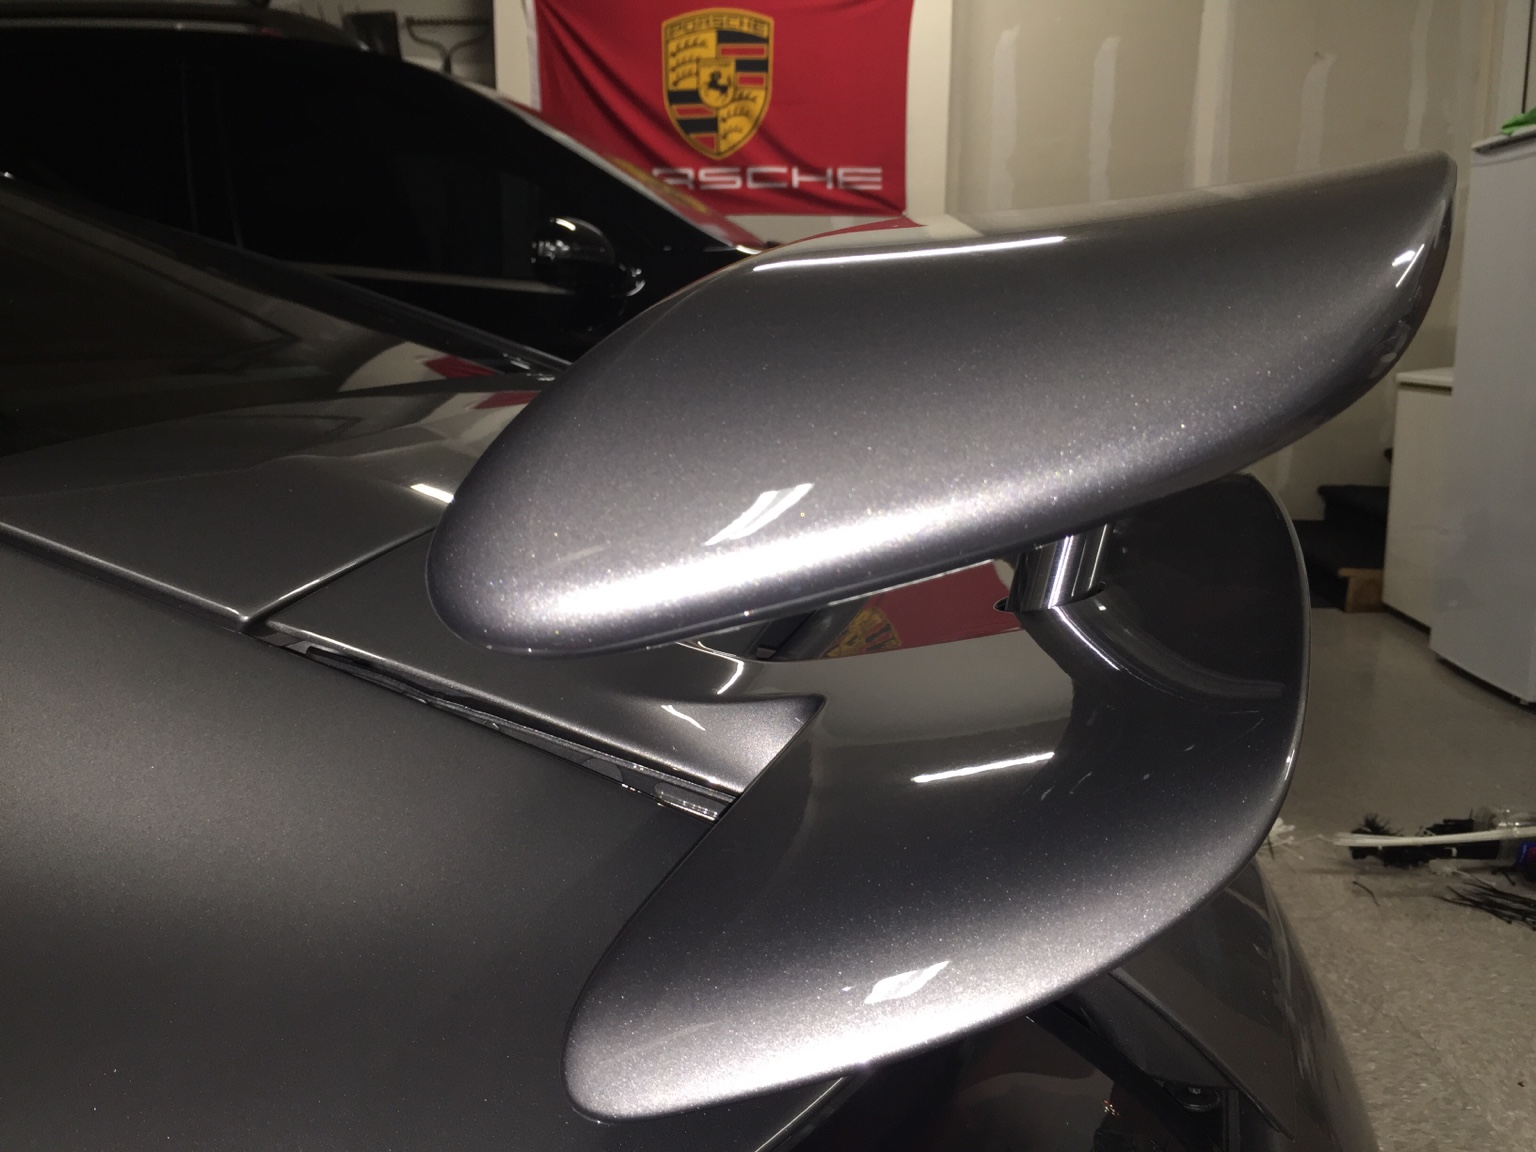 997 Turbo Rear Spoiler Failure Fix and Shopping List (Pics)